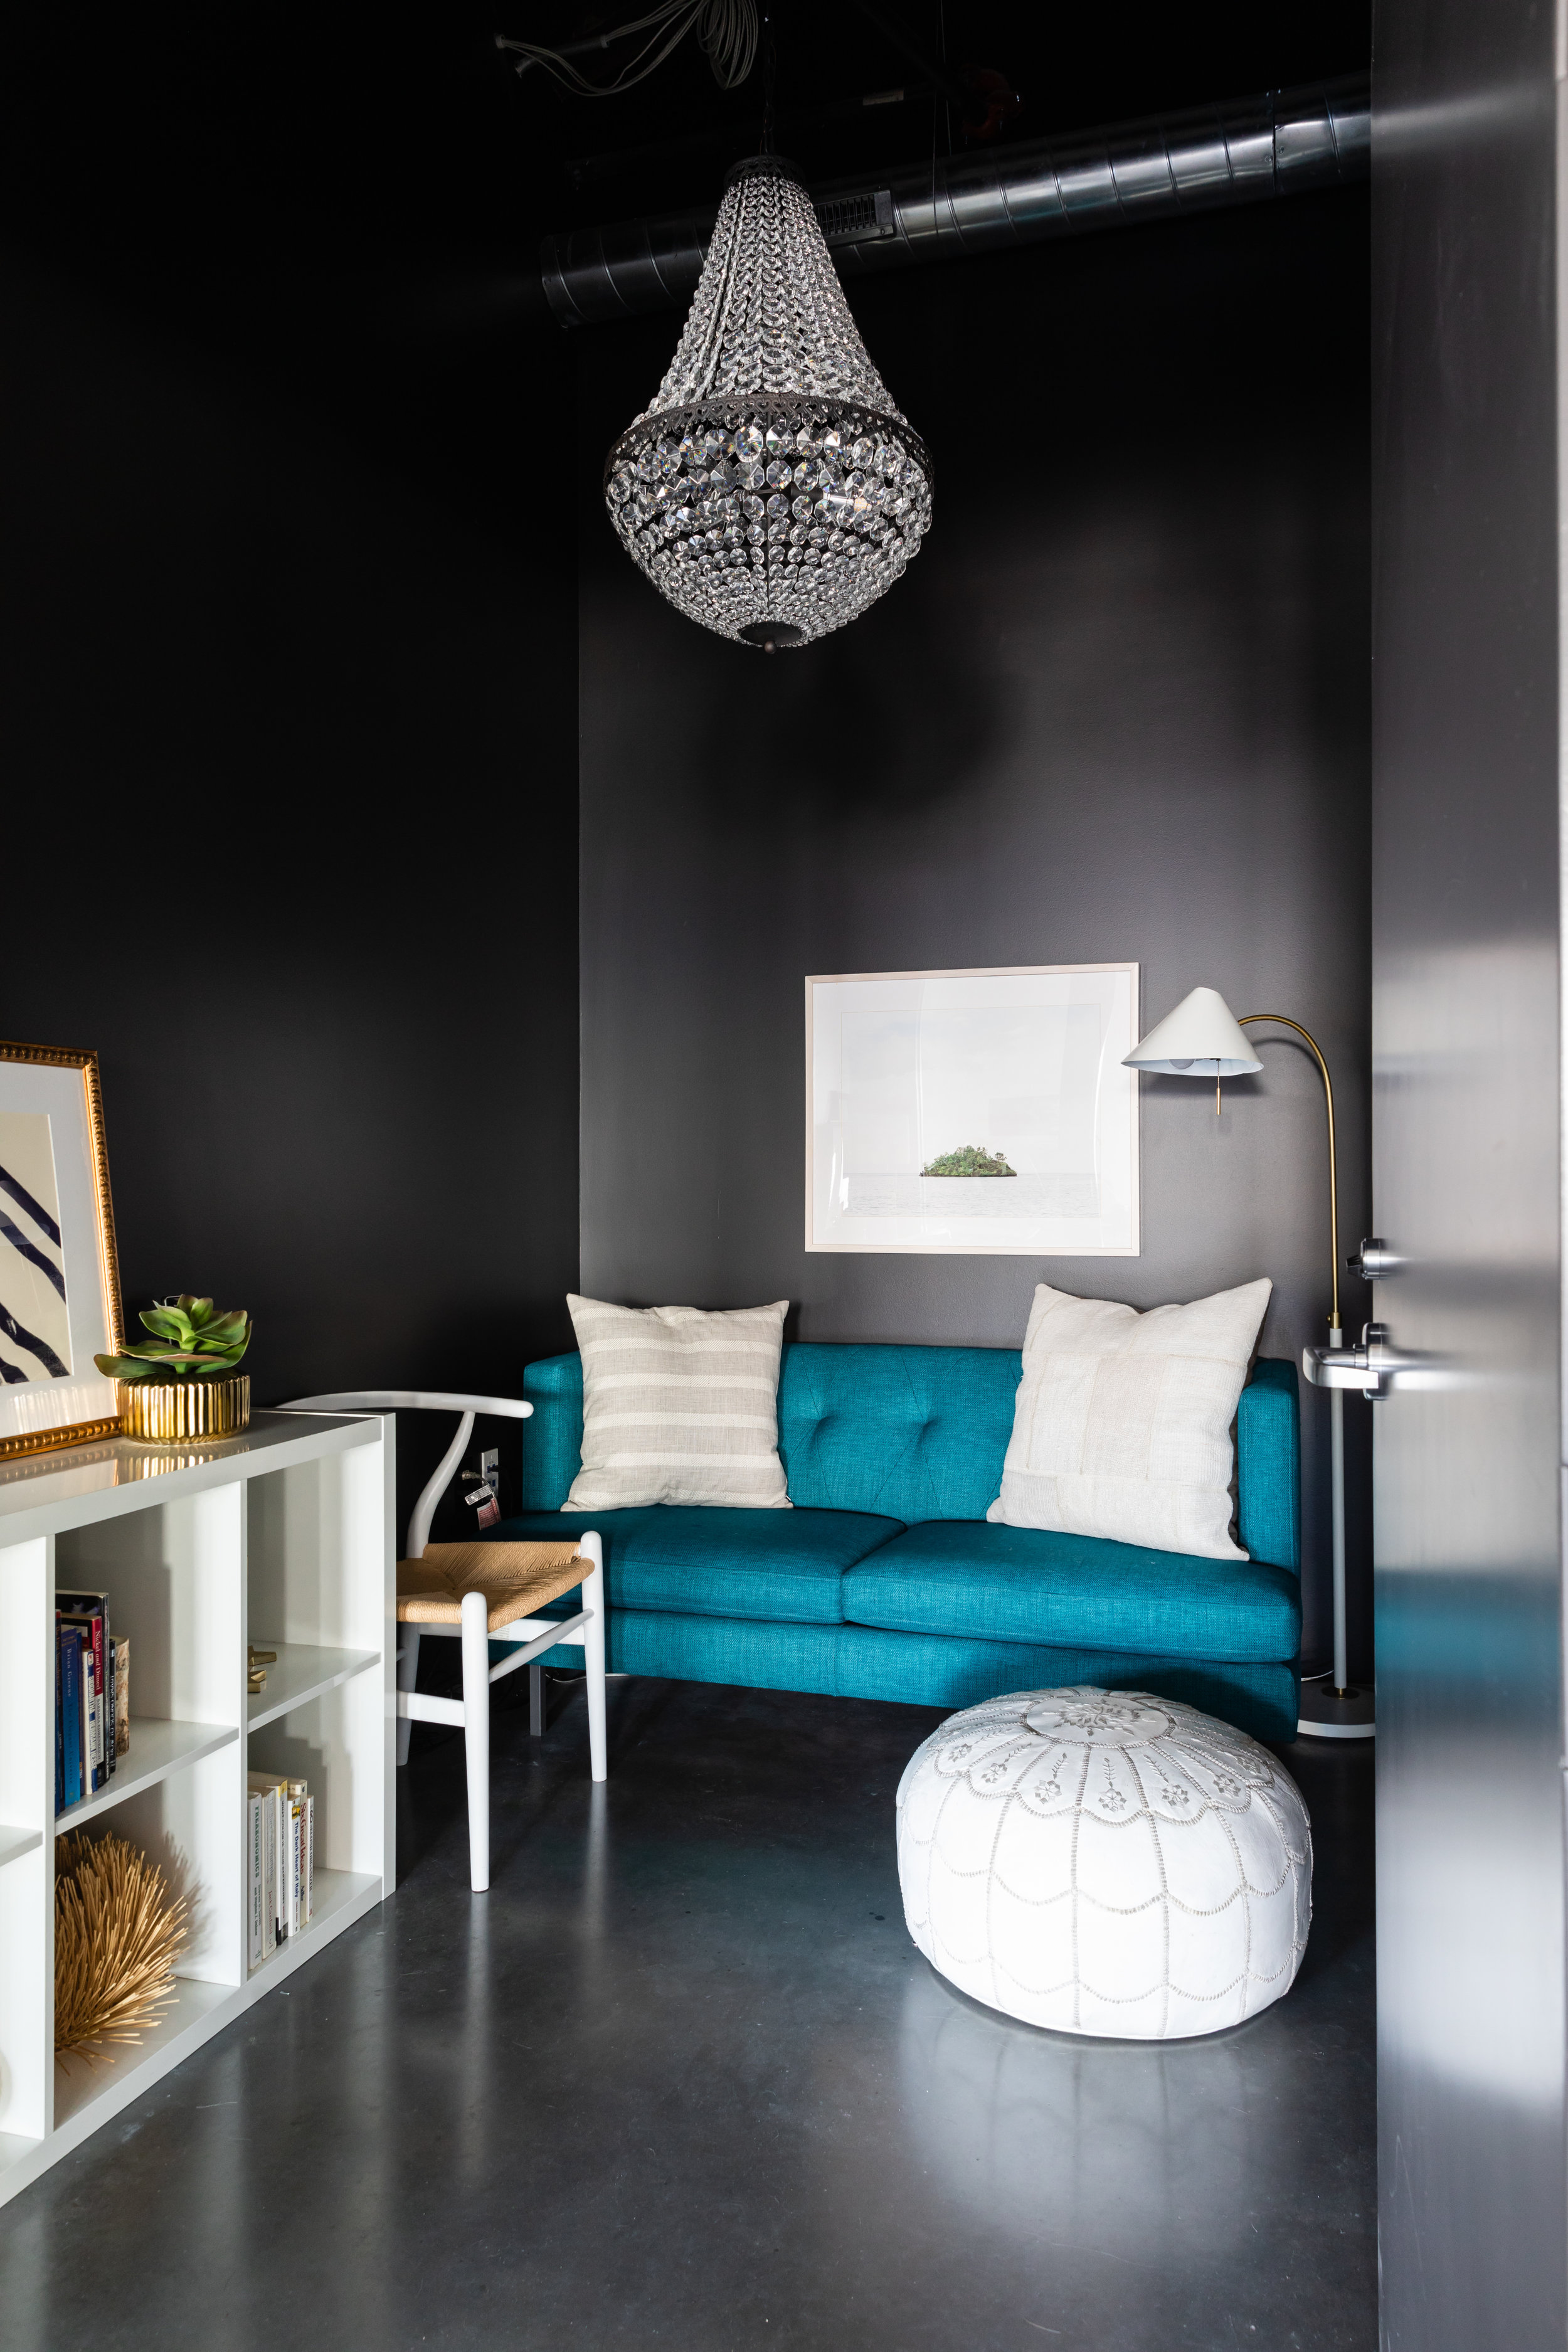 Conference room with black walls, white bookshelves, blue velvet couch, and glass chandelier.